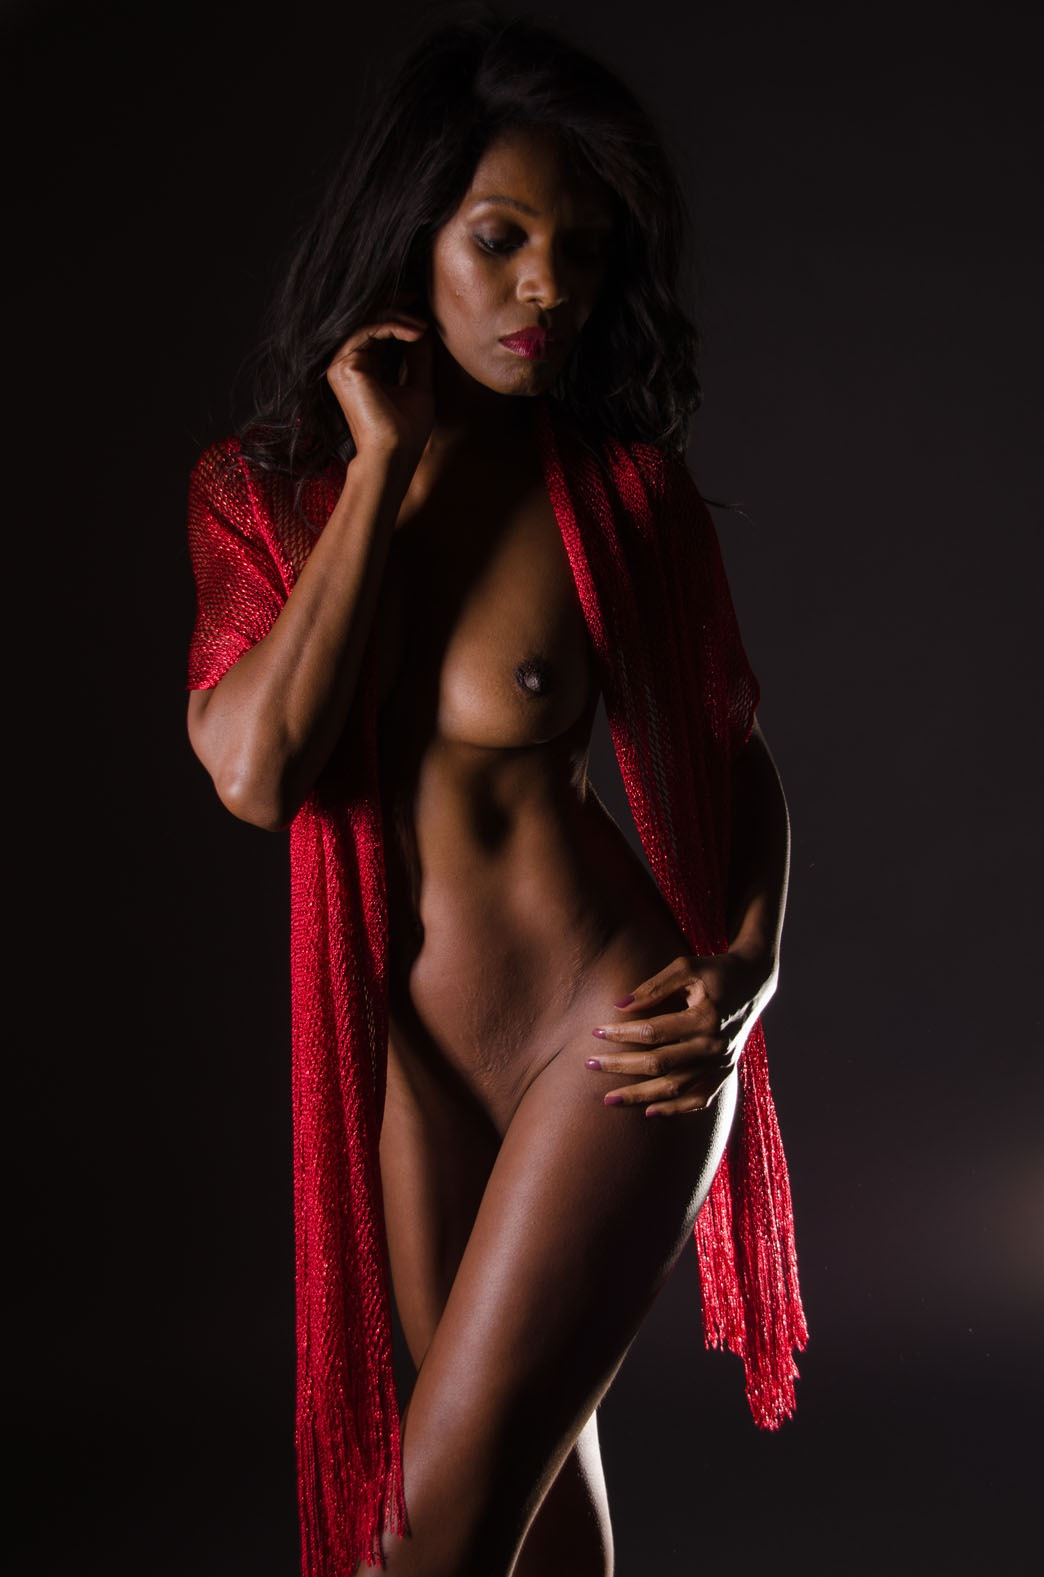 red shawl by Mike Bolton